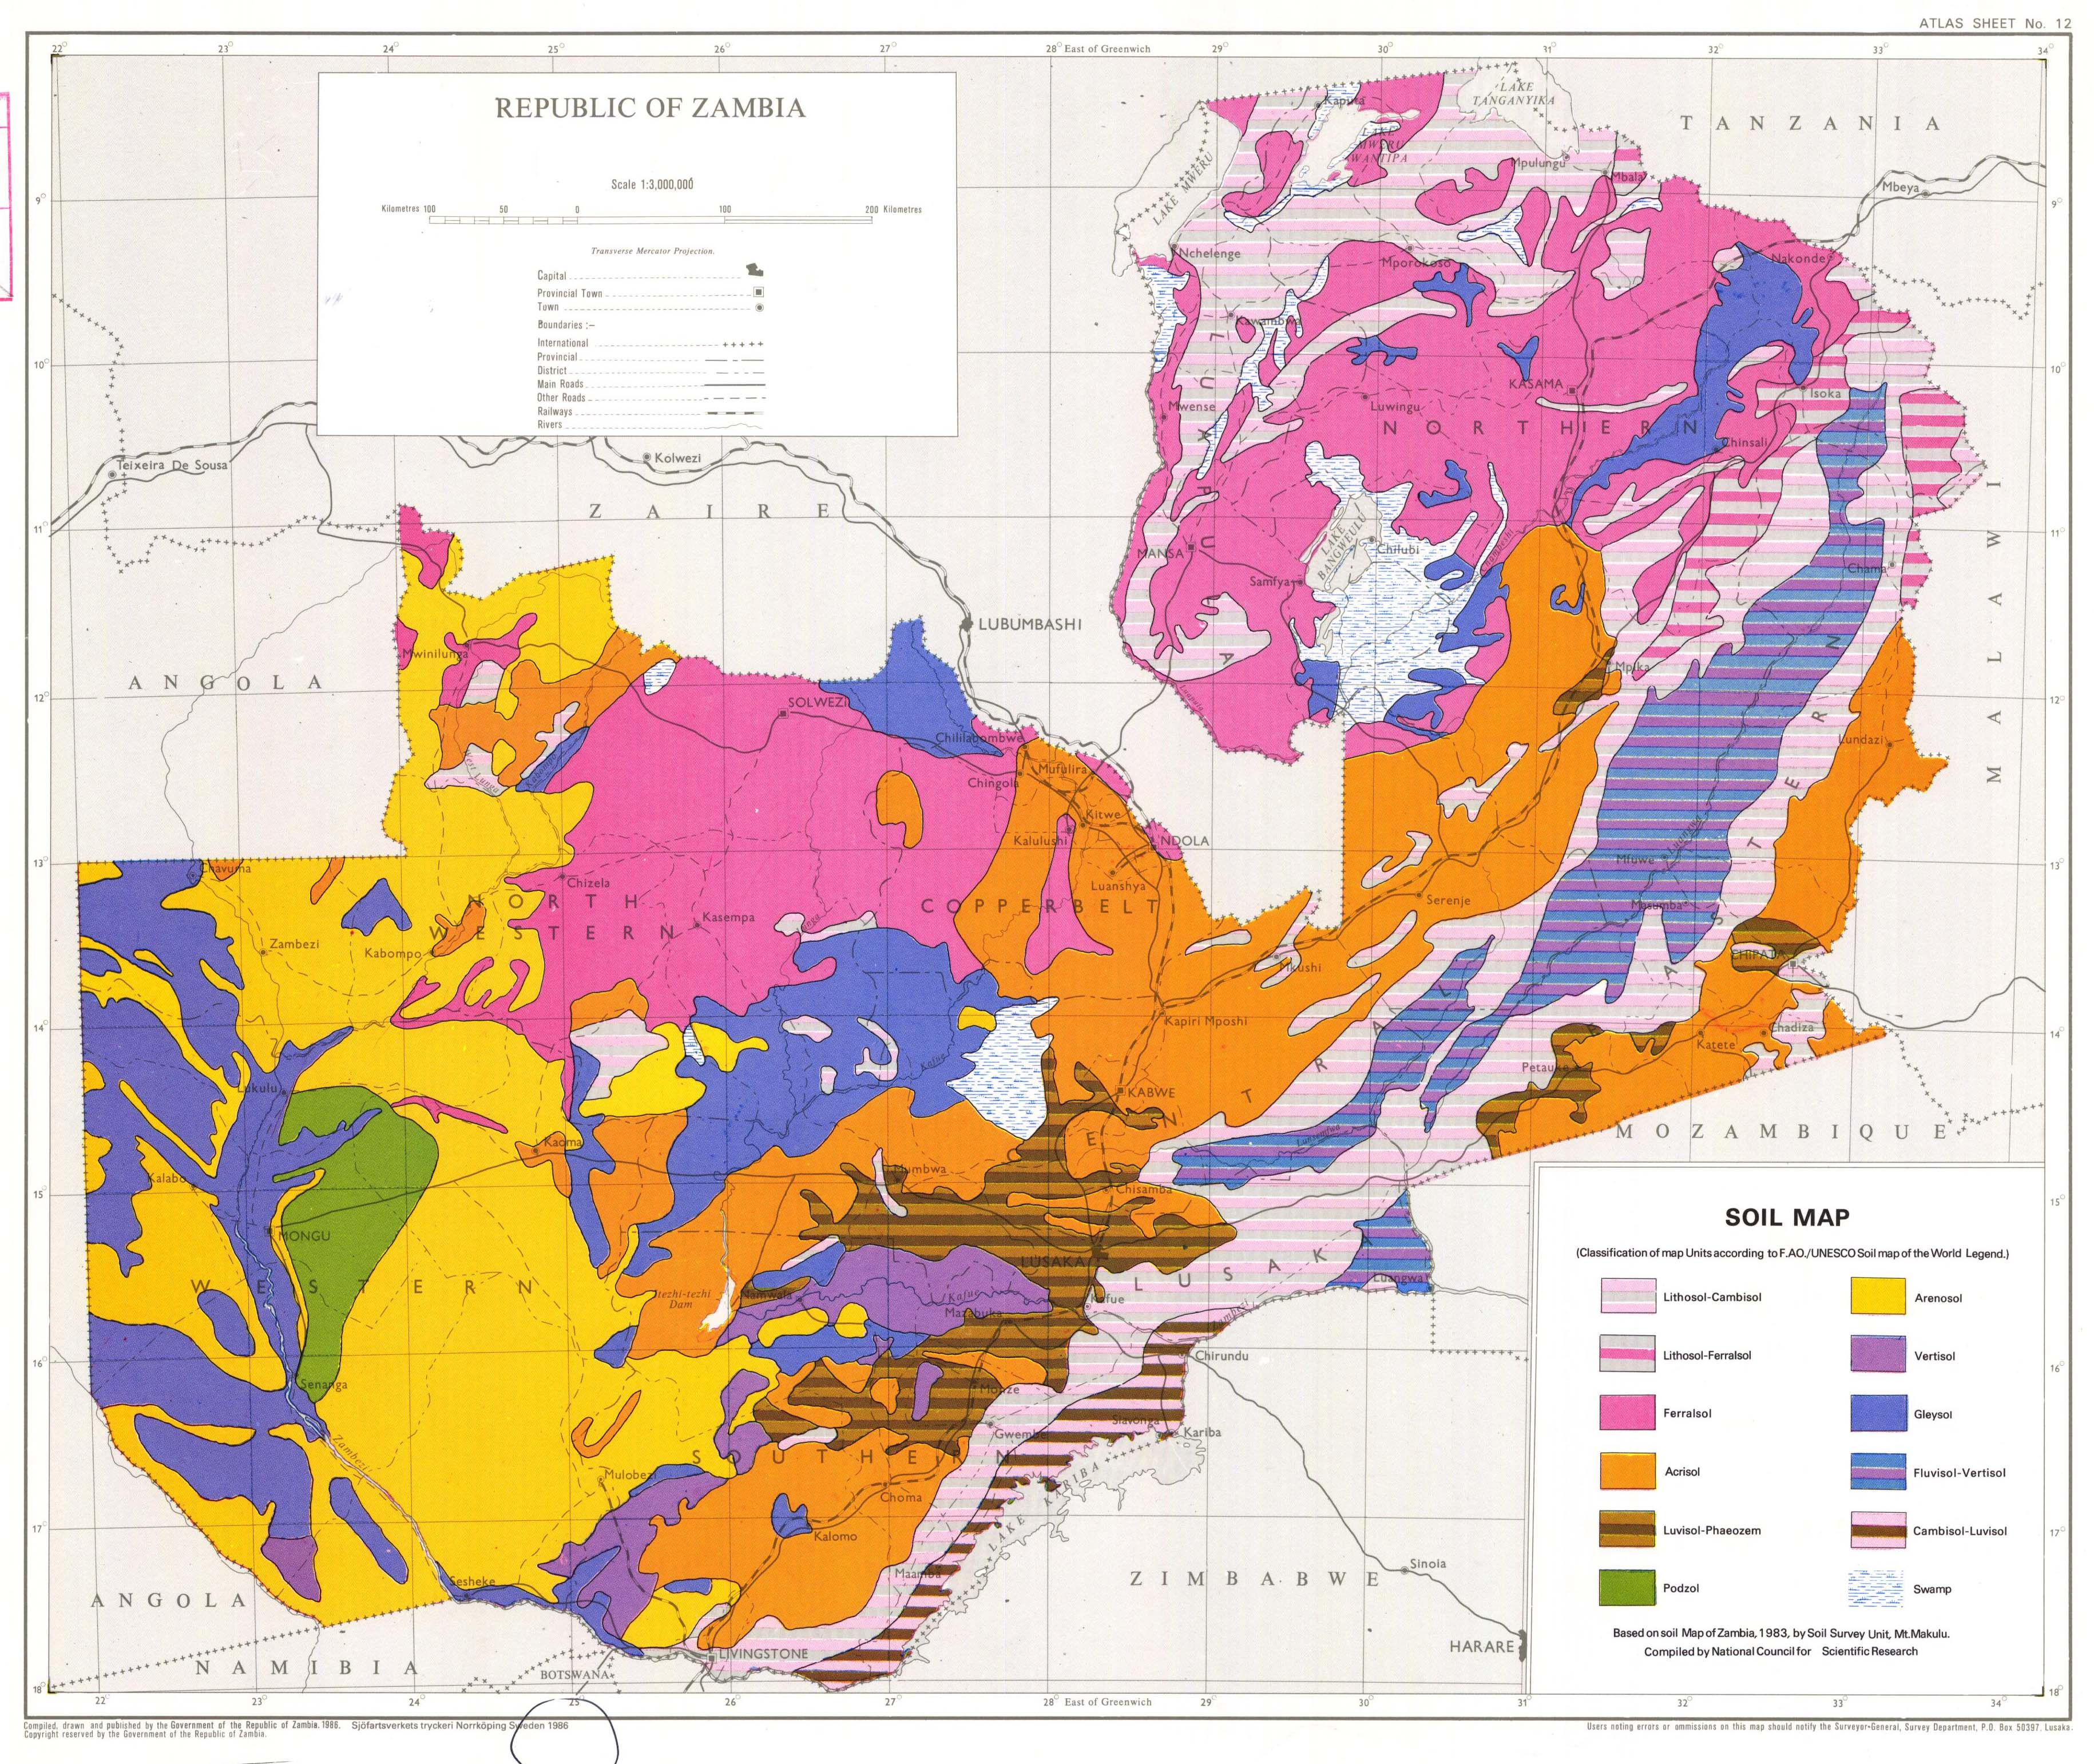 The soil maps of Africa - Display Maps Zambia Land Use Map on the jungle in africa on map, africa climate map, atlas mountains africa physical map,